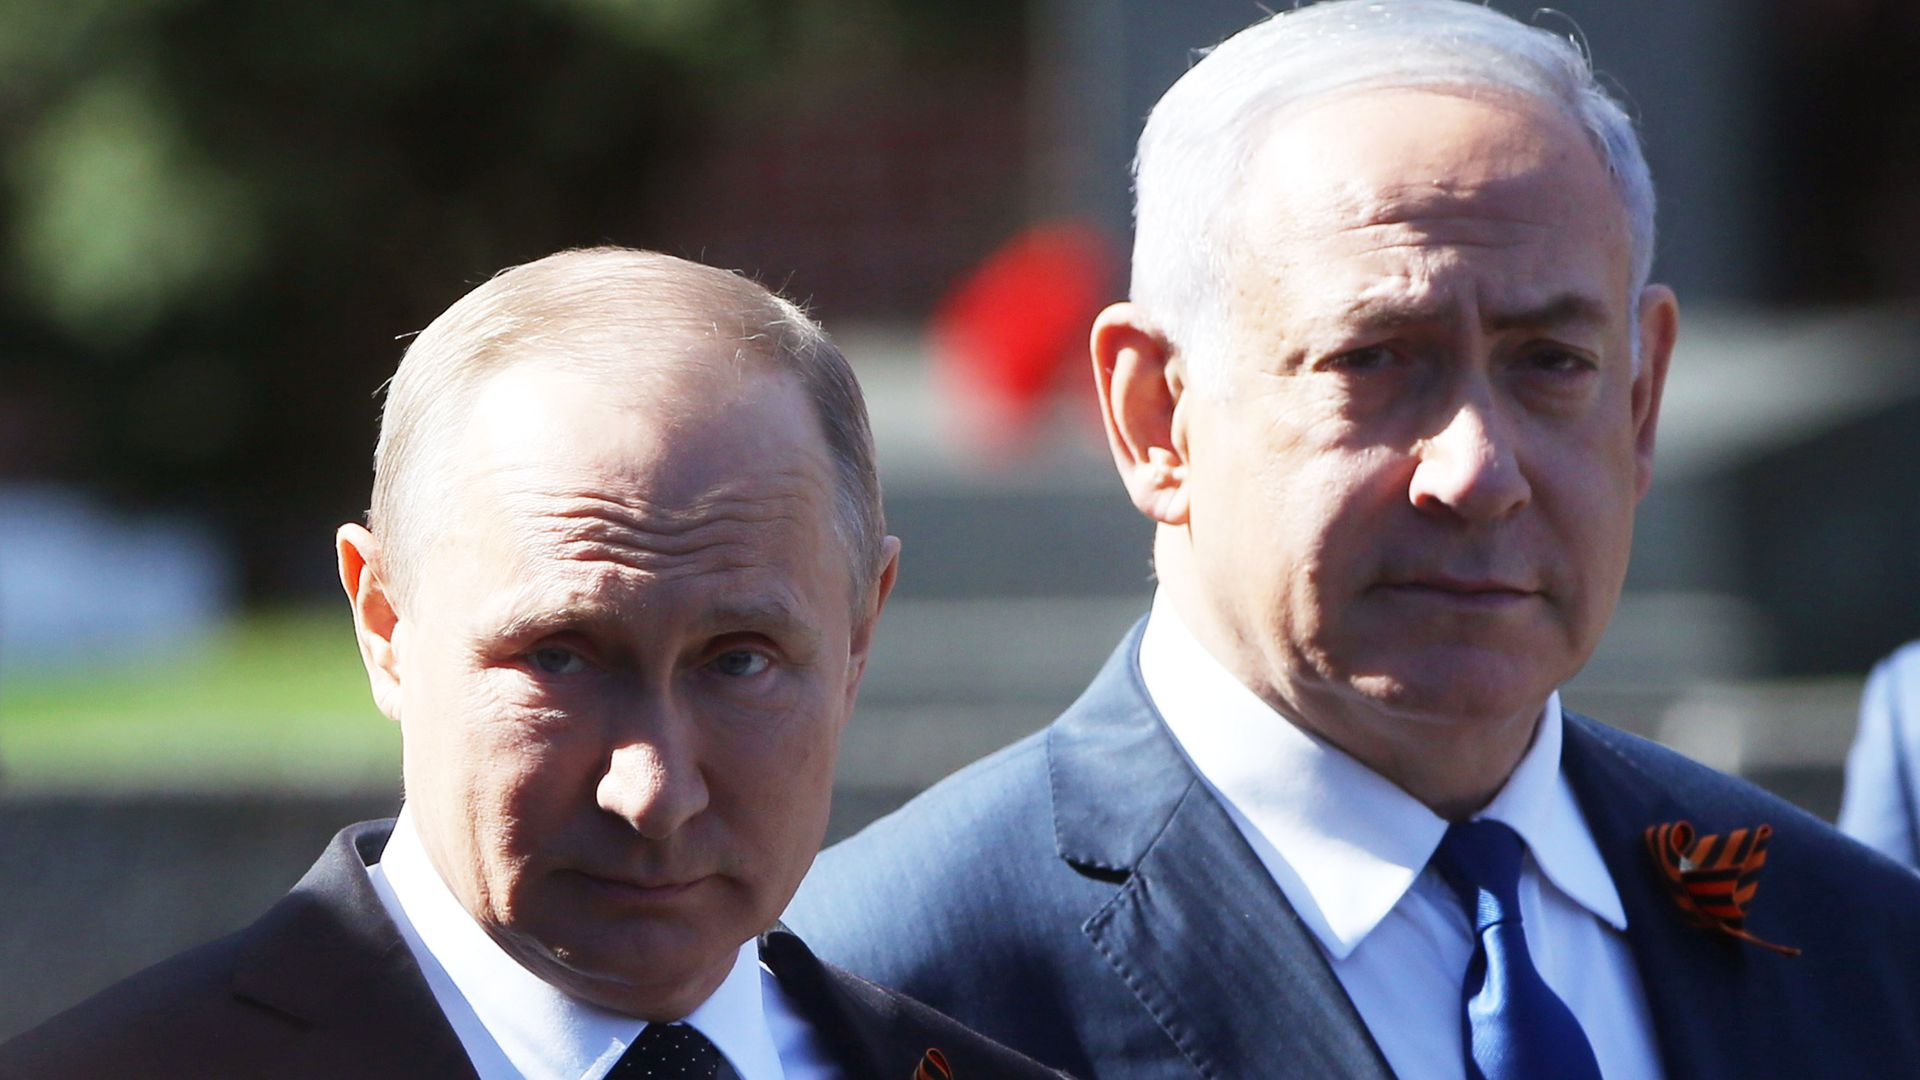 Vladimir Putin and Benjamin Netanyahu stand side by side